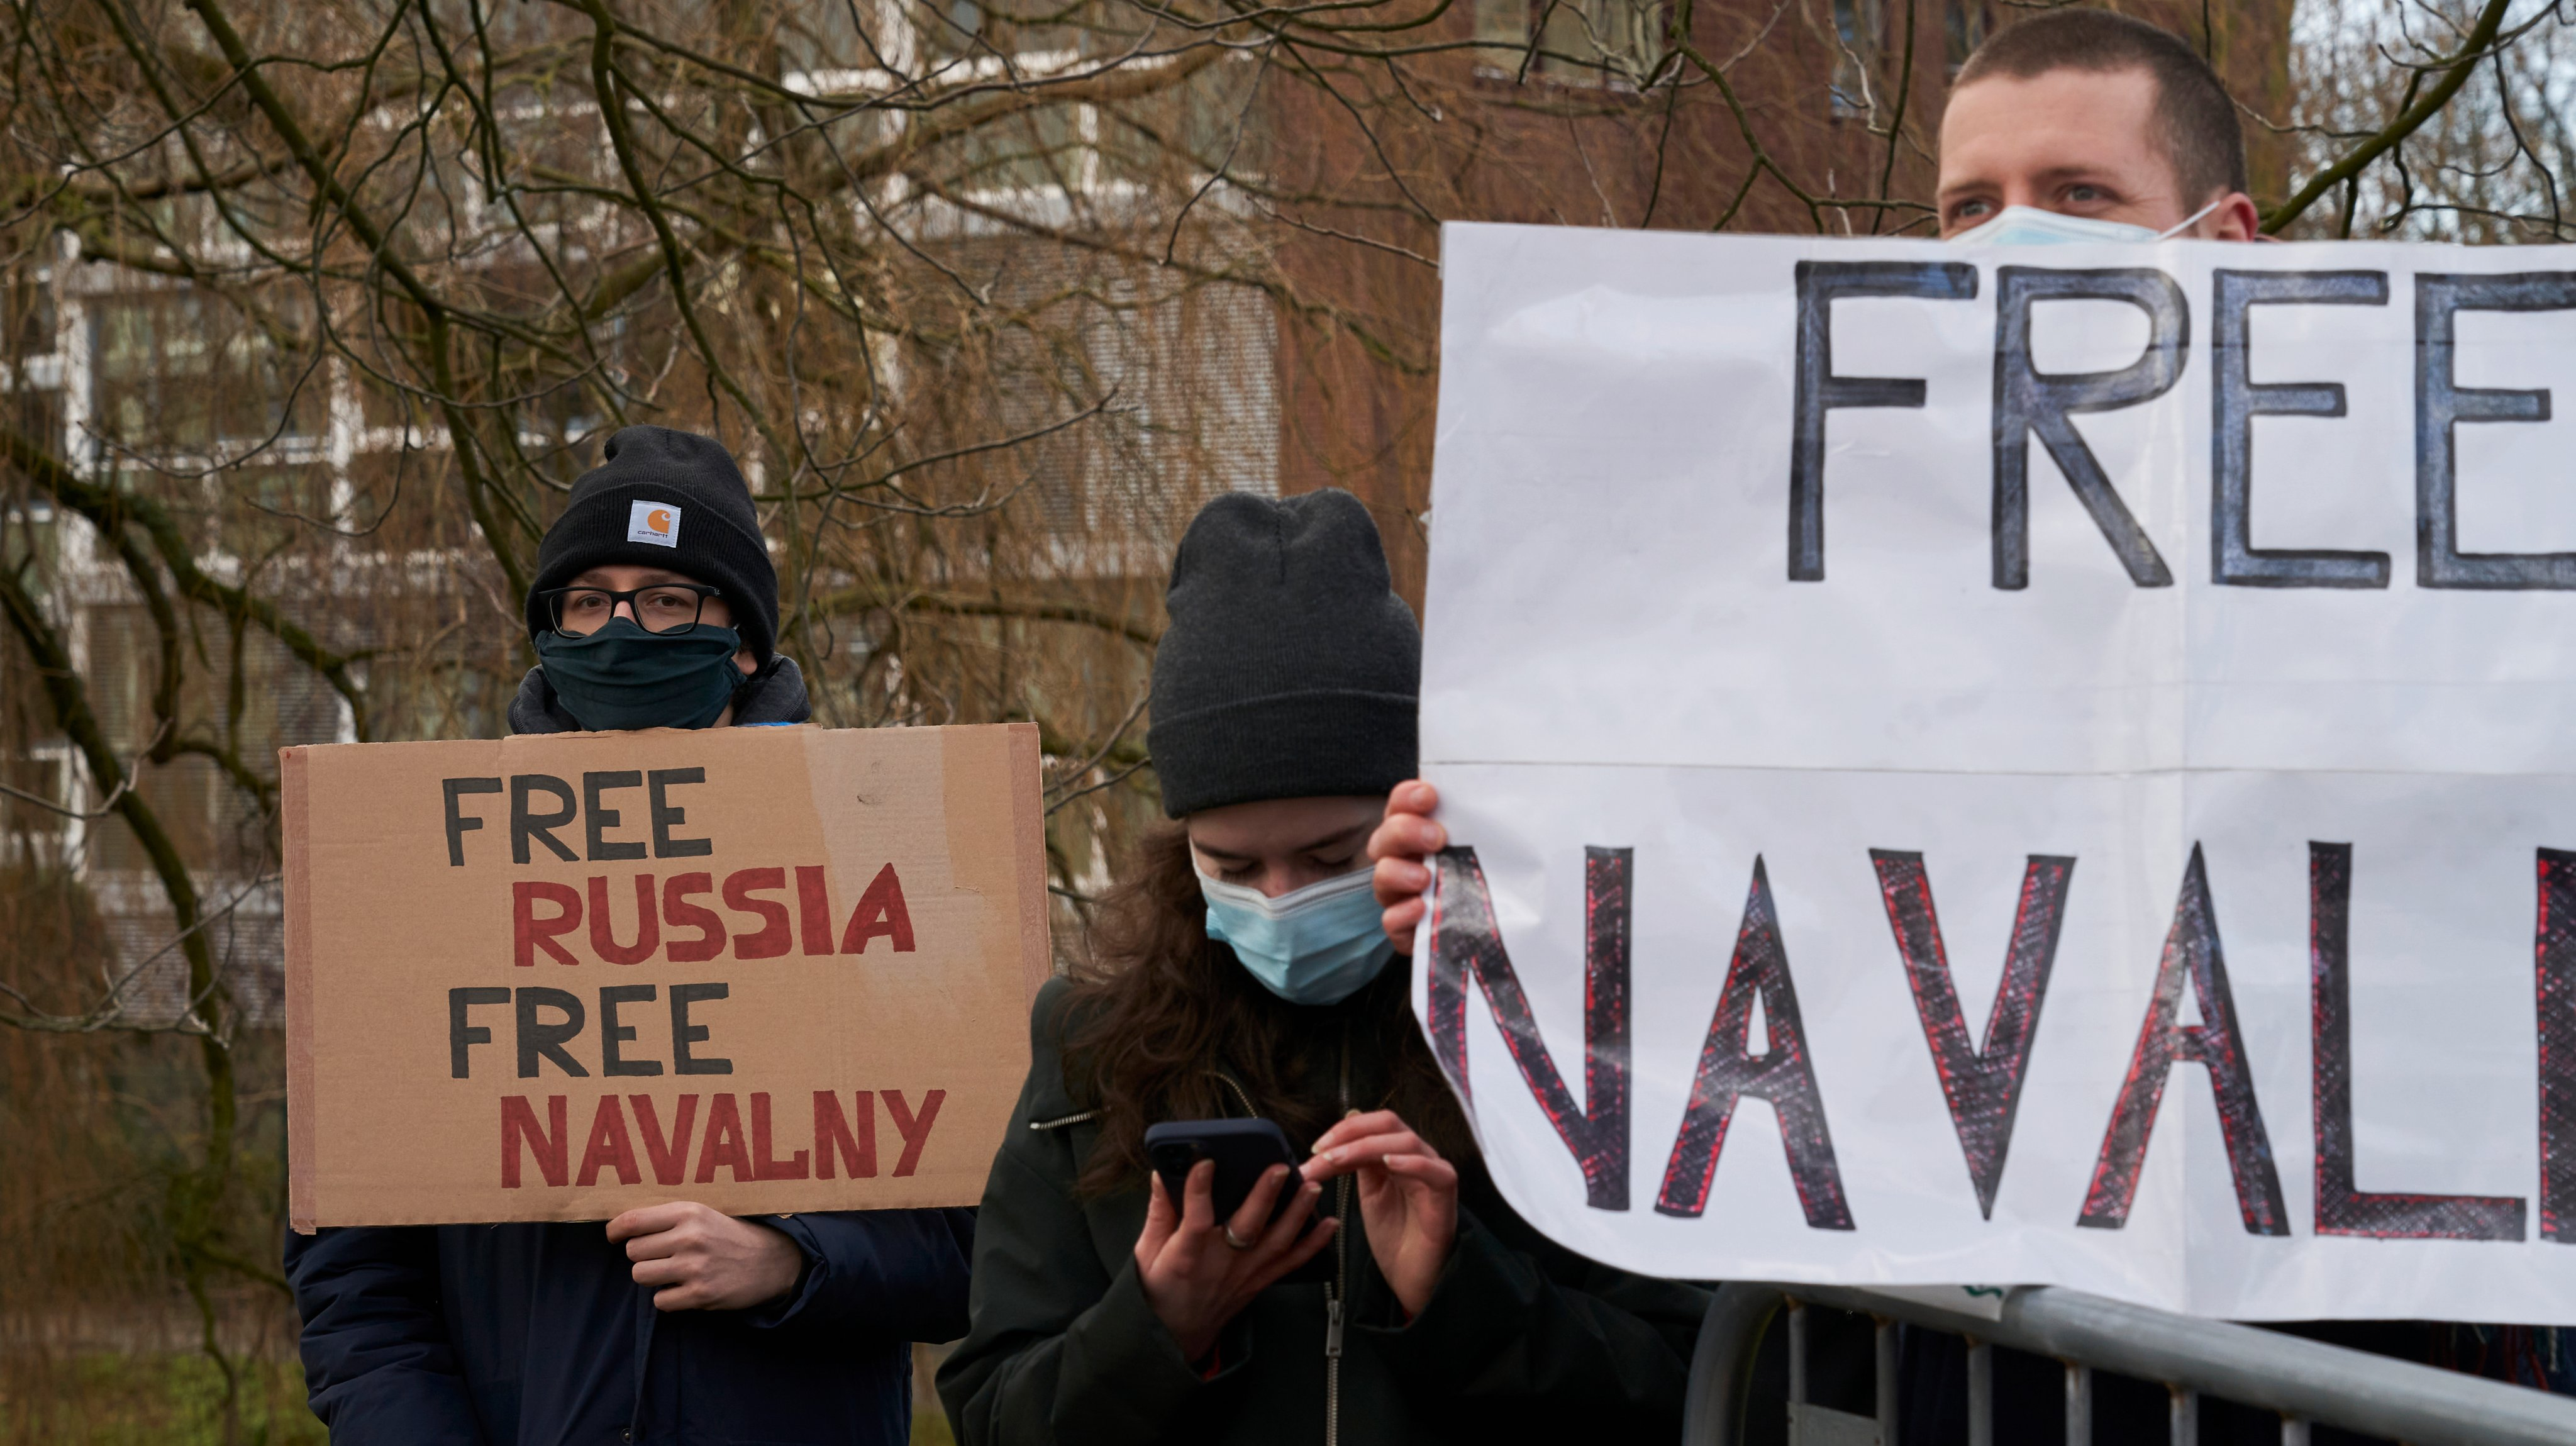 Demonstration in support of Russian dissident Alexei Navalny